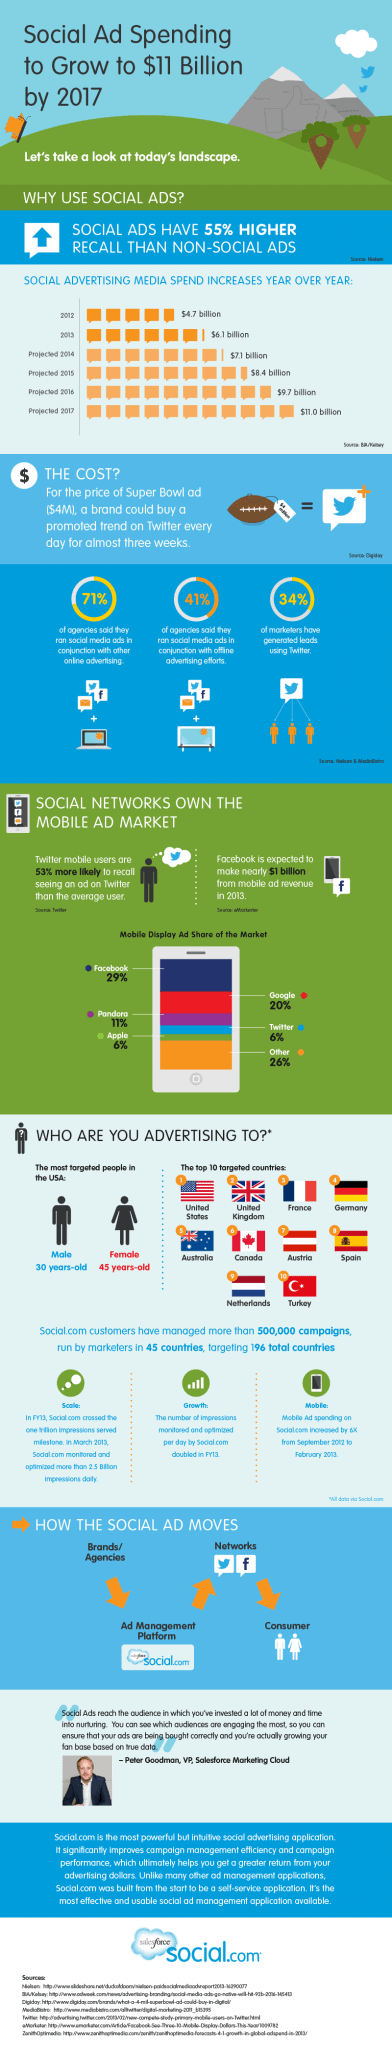 Social media advertenties gaan exploderen infographic